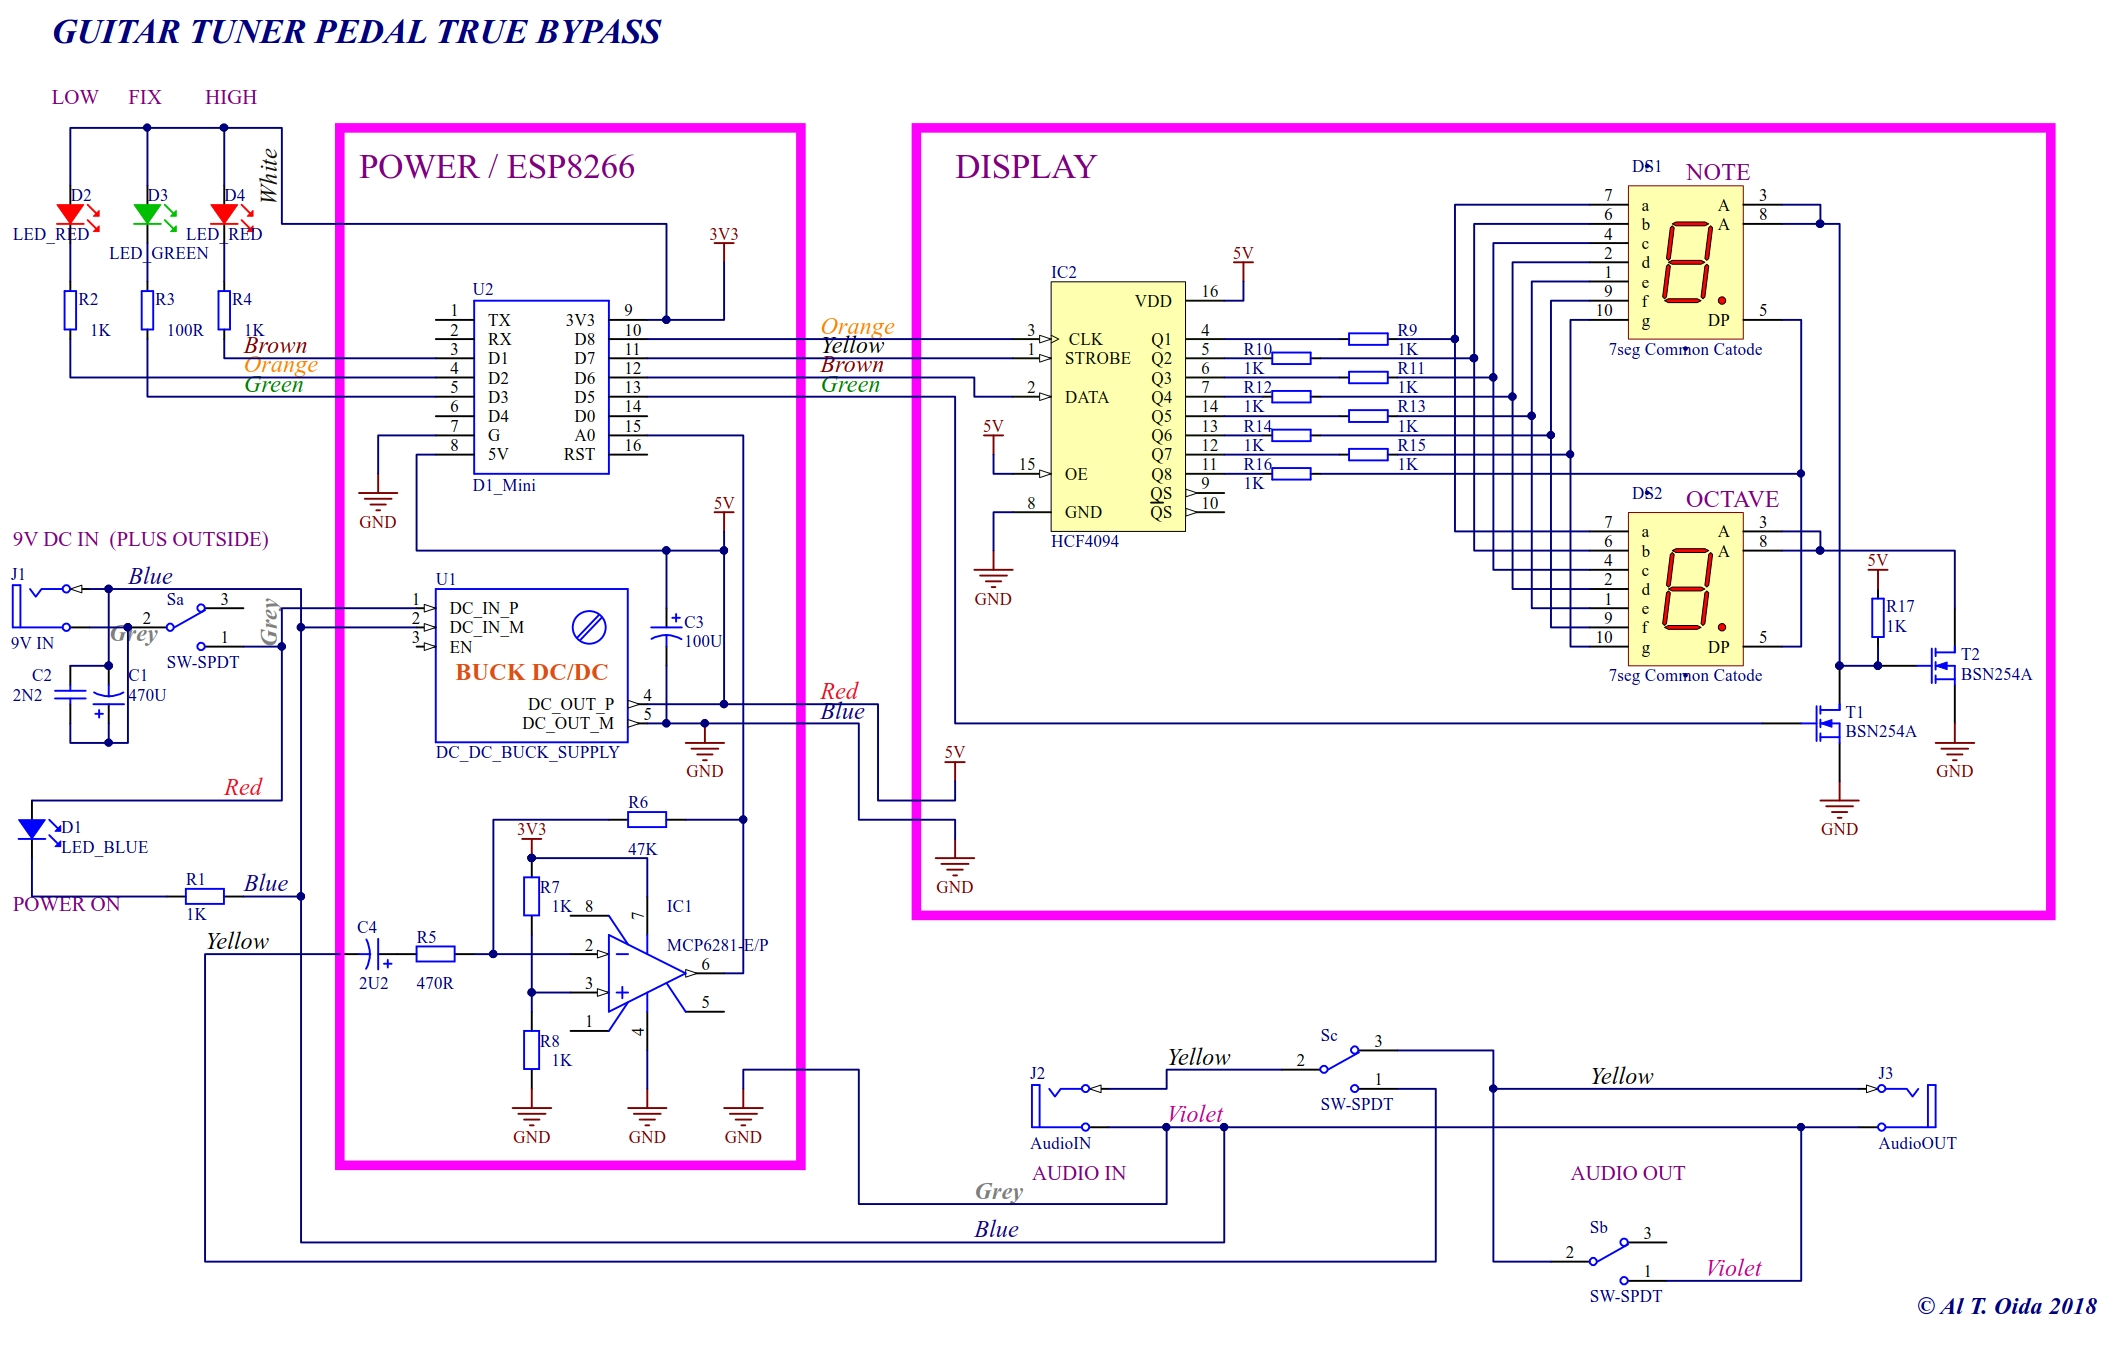 Guitar Tuner Doing Hard Oida Tech 9vdc Power Supply Regulated 7 Segment Display Circuit Diagram From This Schematics Is Missing The By Pass Part Output Jack And Stump Switch Cause Obvious We Dont Need During Debugging Dc To